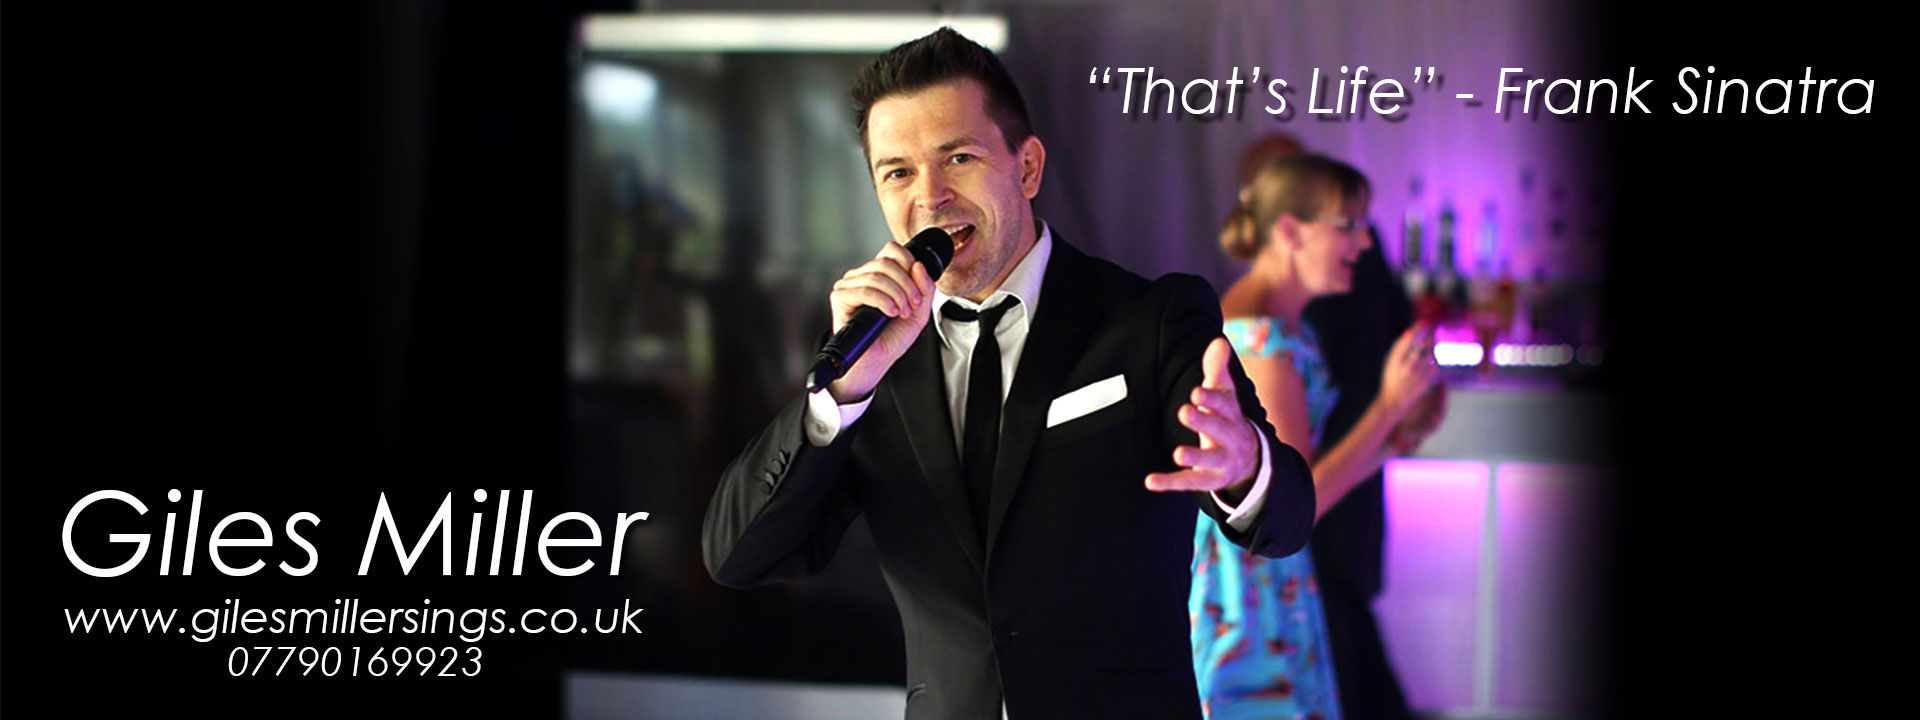 Book Giles Miller Now For Wedding Singer With Bonus Dj Entertainment In Manchester Cheshire Lancashire Merseyside West Yorkshire North